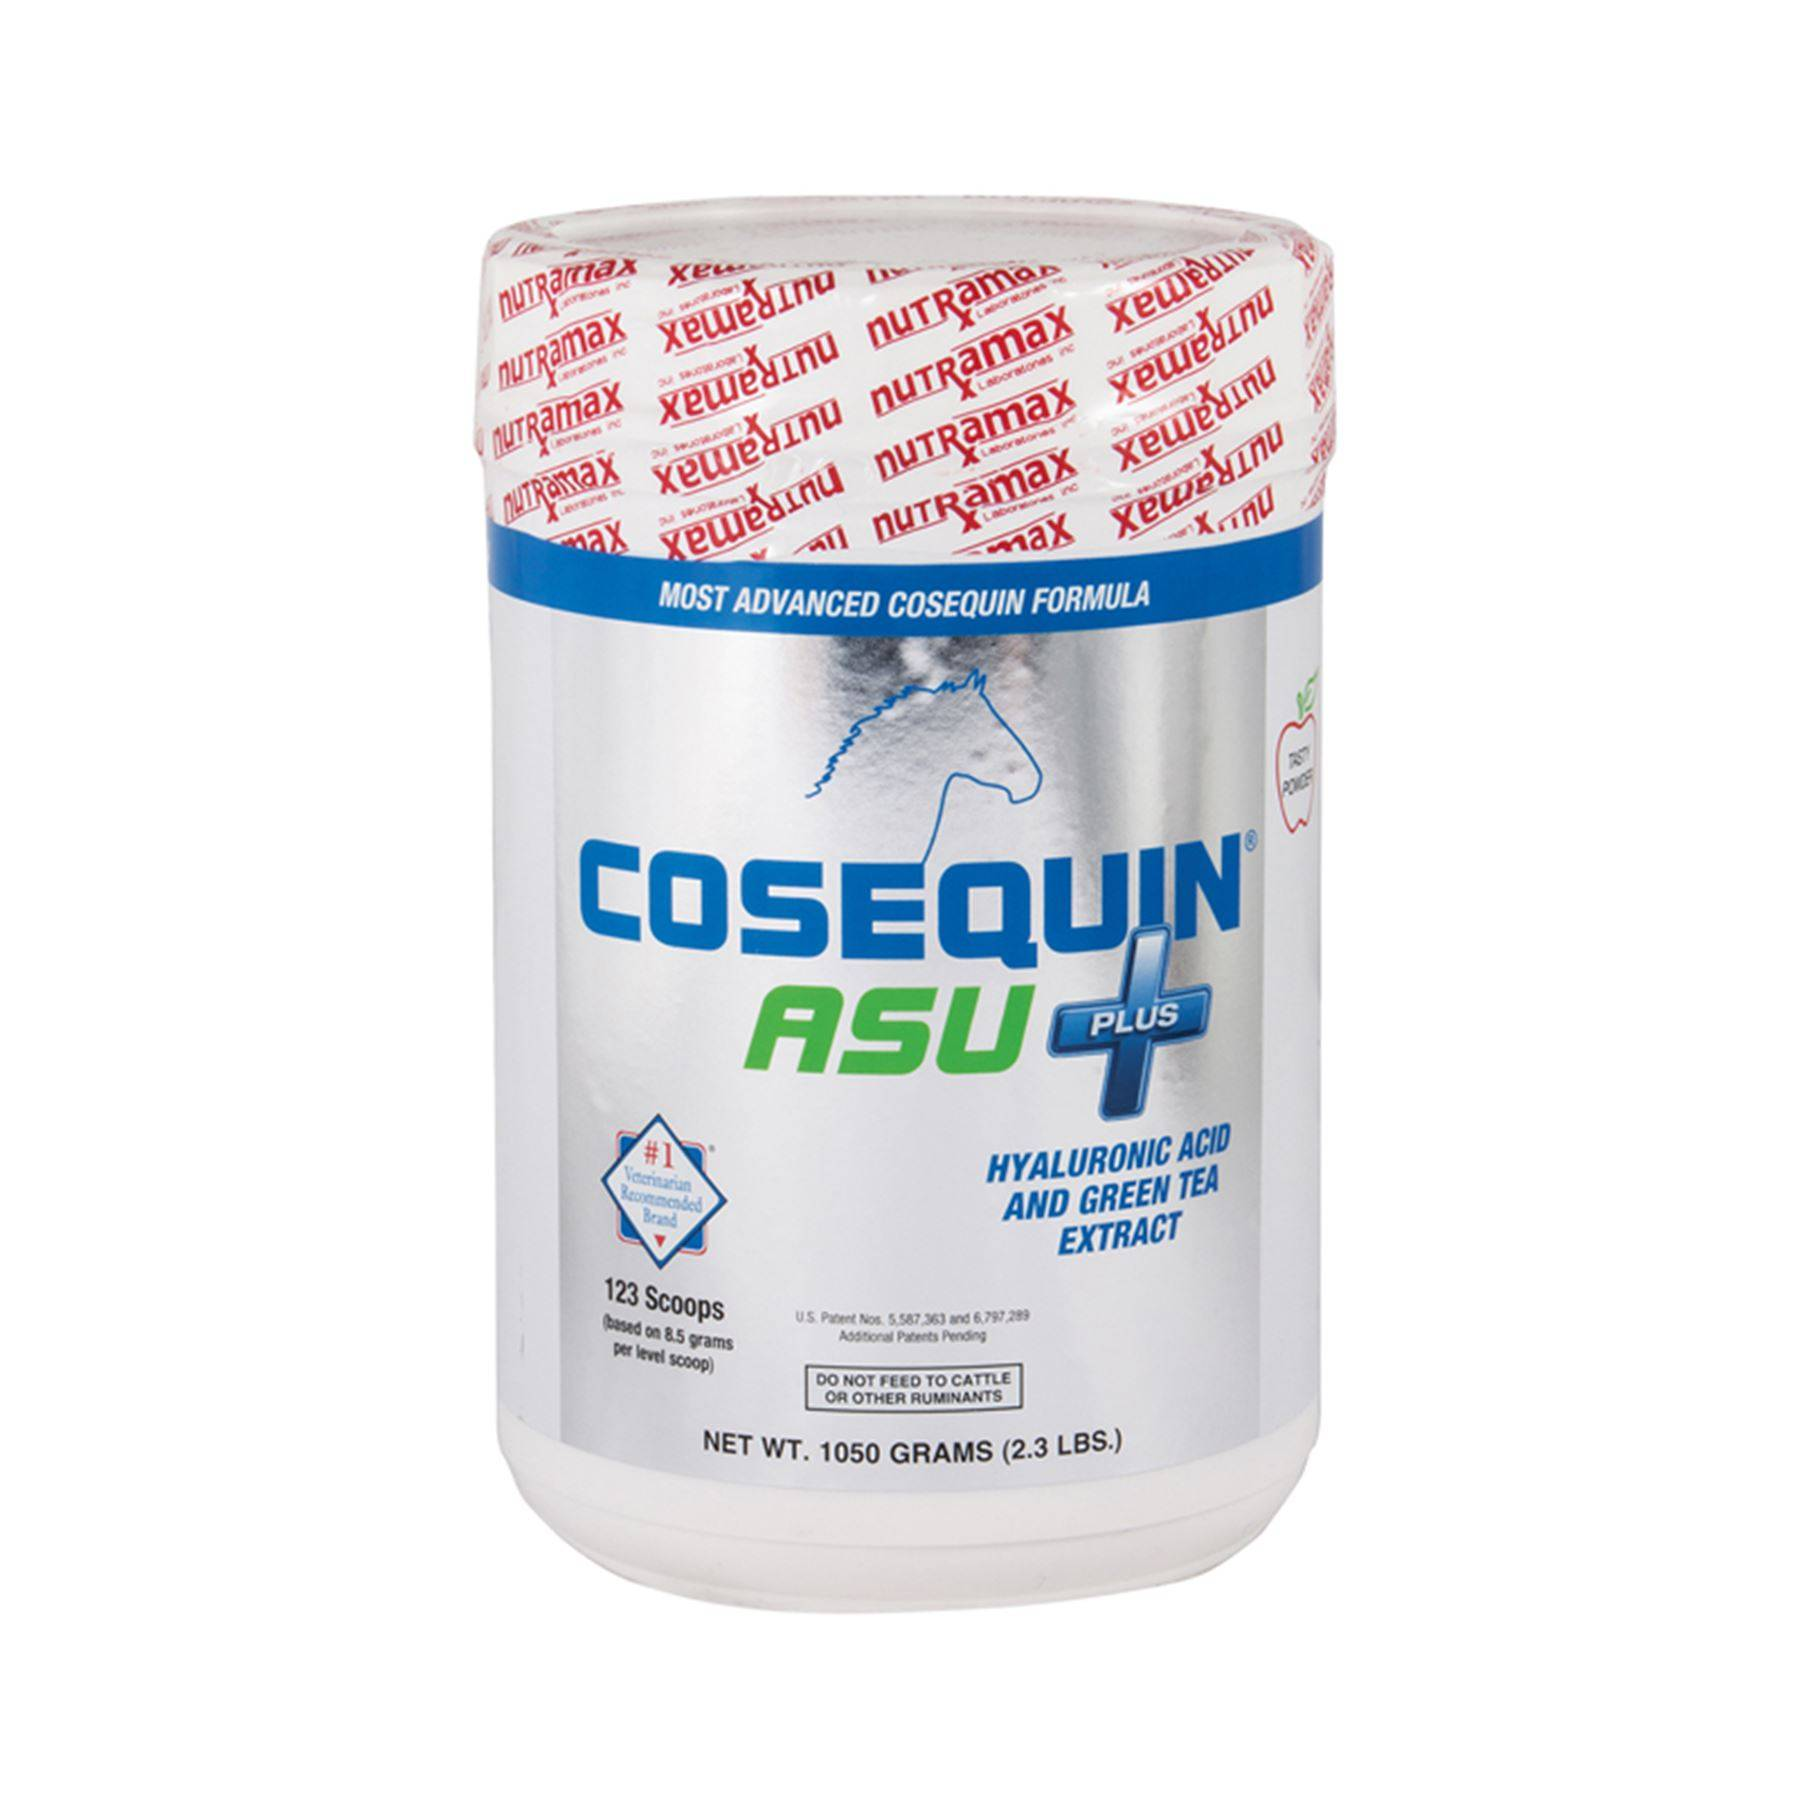 Cosequin asu plus 1050gm for 24308